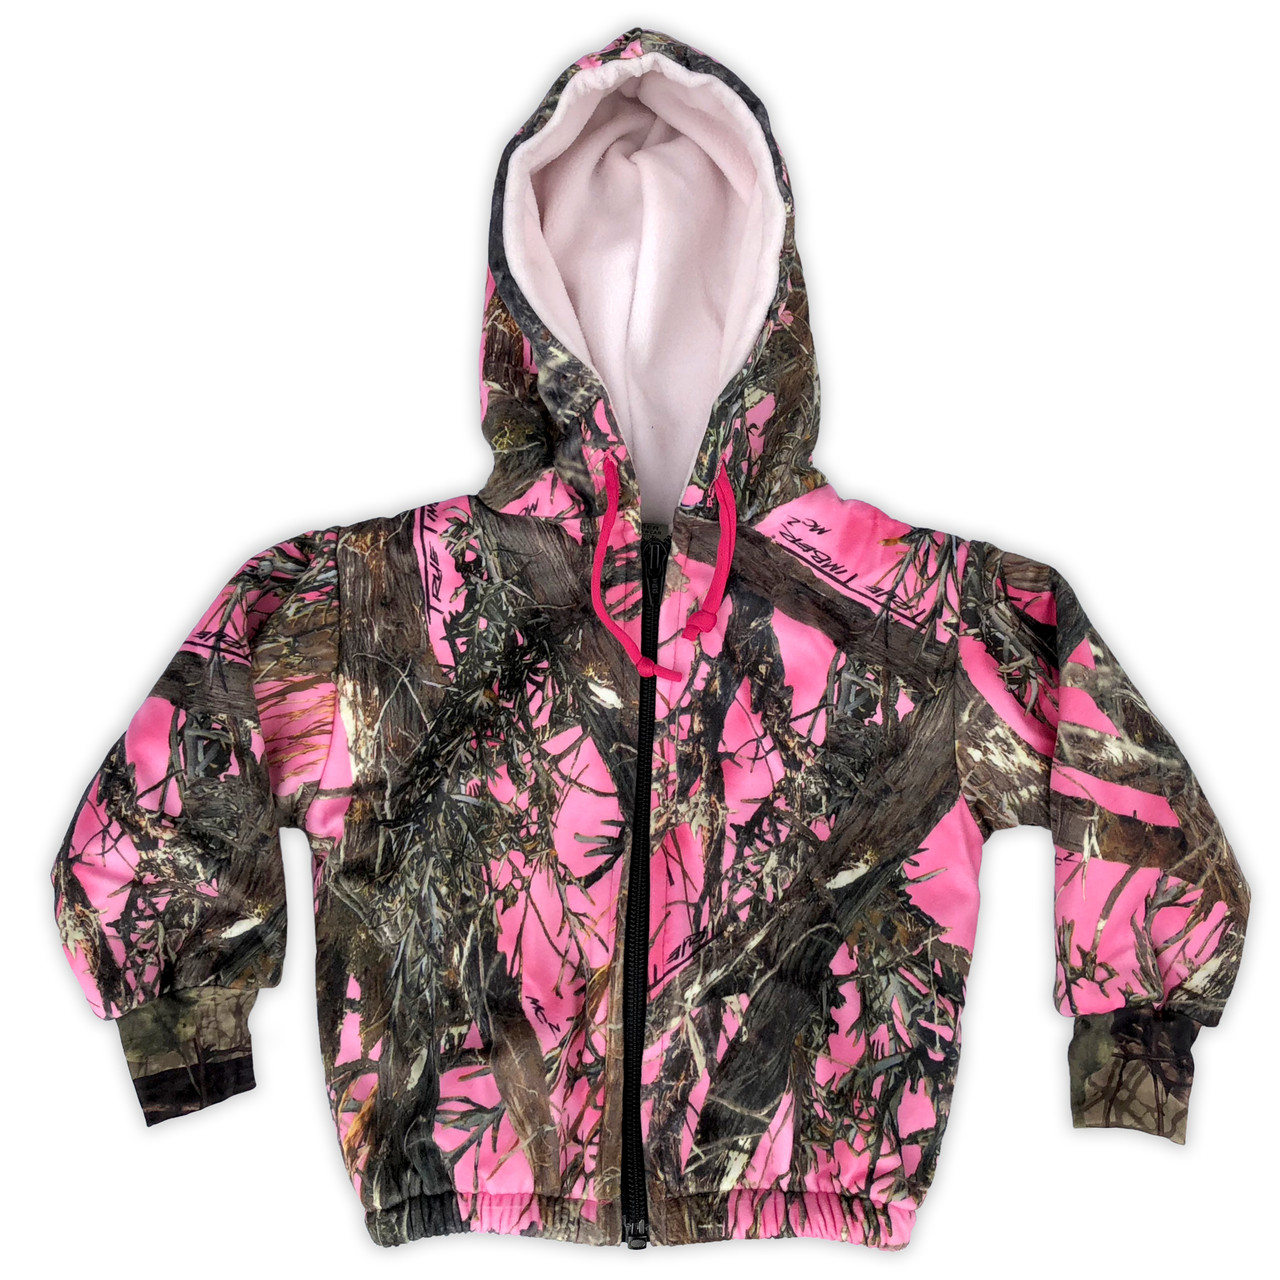 6dbe6e144 Baby & Toddler Pink Camouflage Jacket. Loading zoom